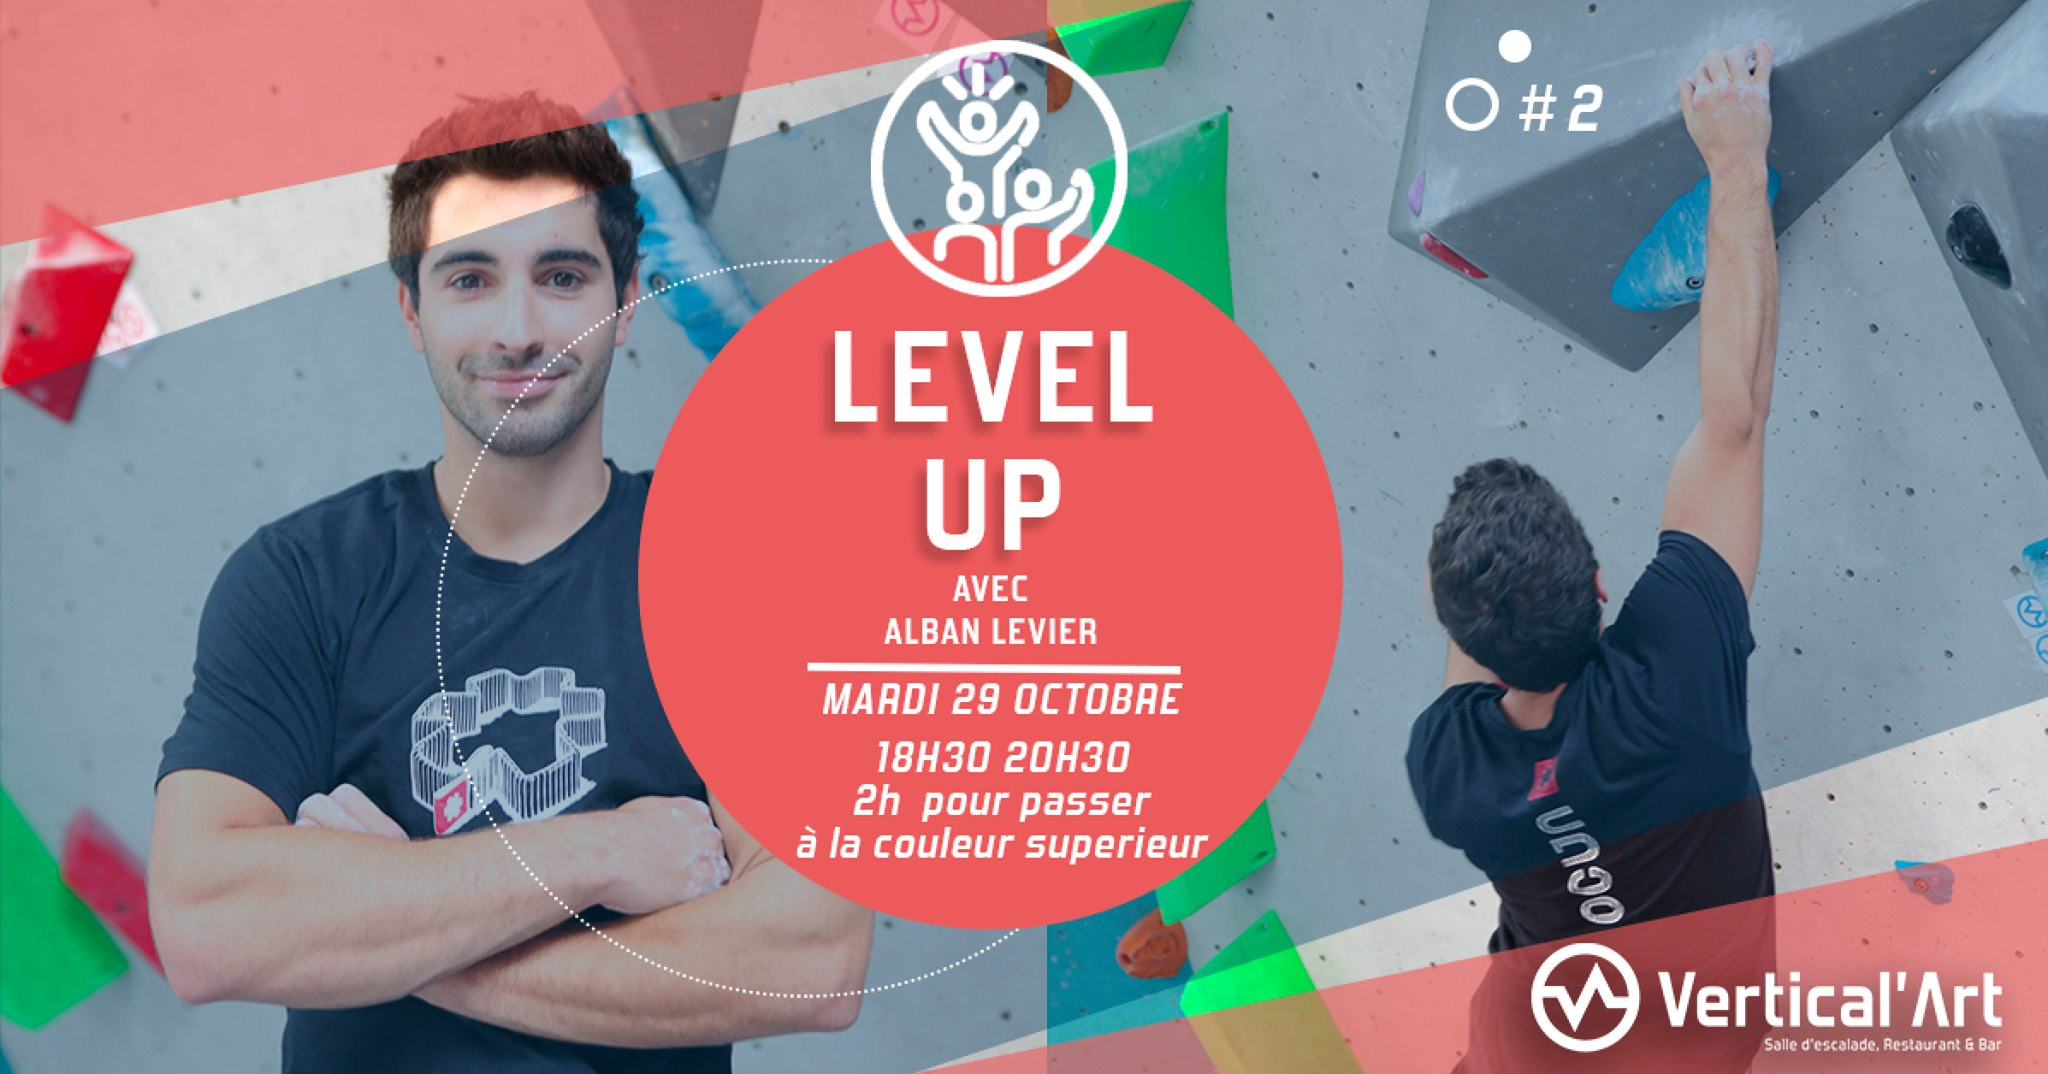 master class level up 2 - avec notre mender de la team Vertical'Art - Alban Levier à lillli salle d'escalade de bloc restaurant et bar -